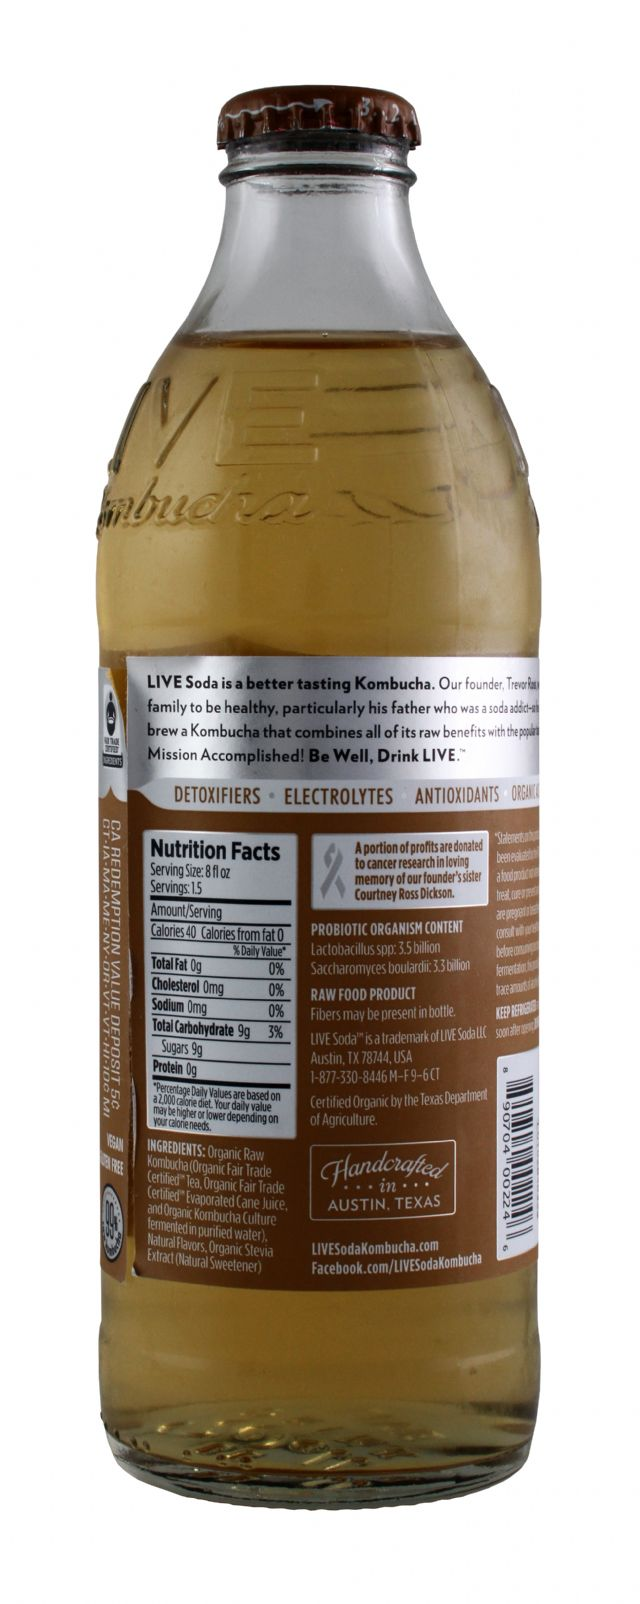 Live Soda Kombucha: Live ReviveRoot Facts